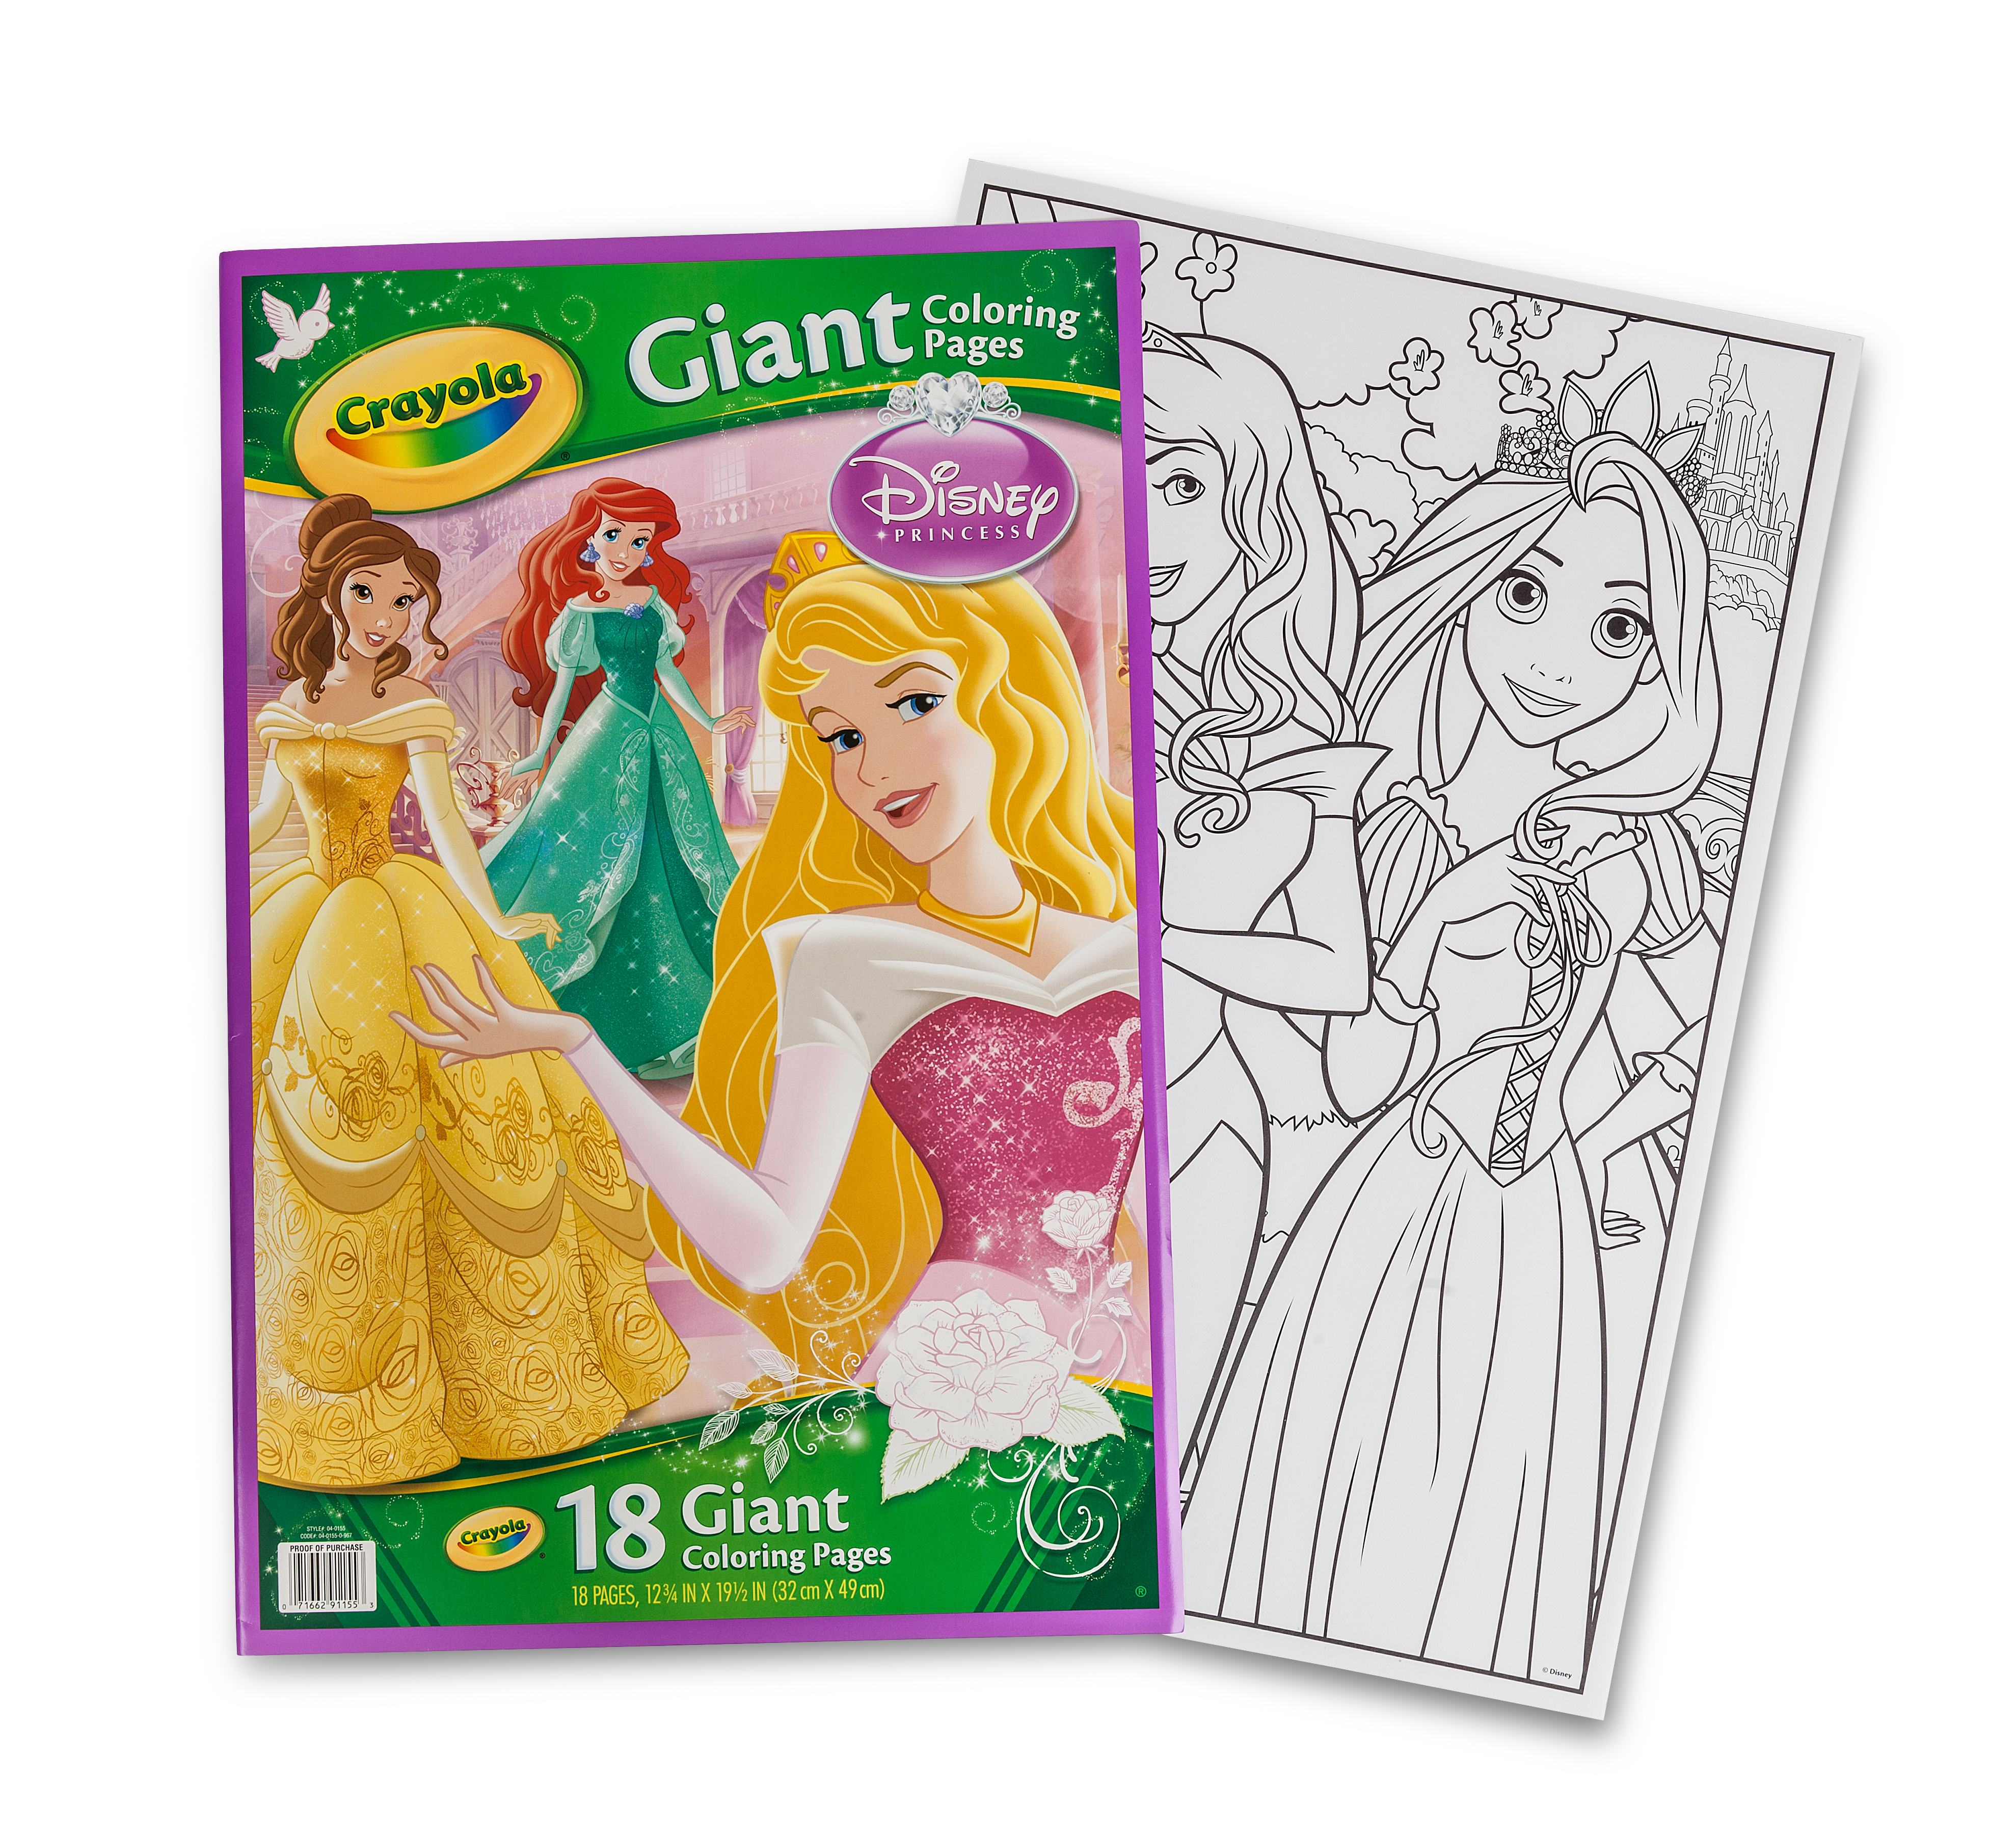 Giant Coloring Pages Disney Princess